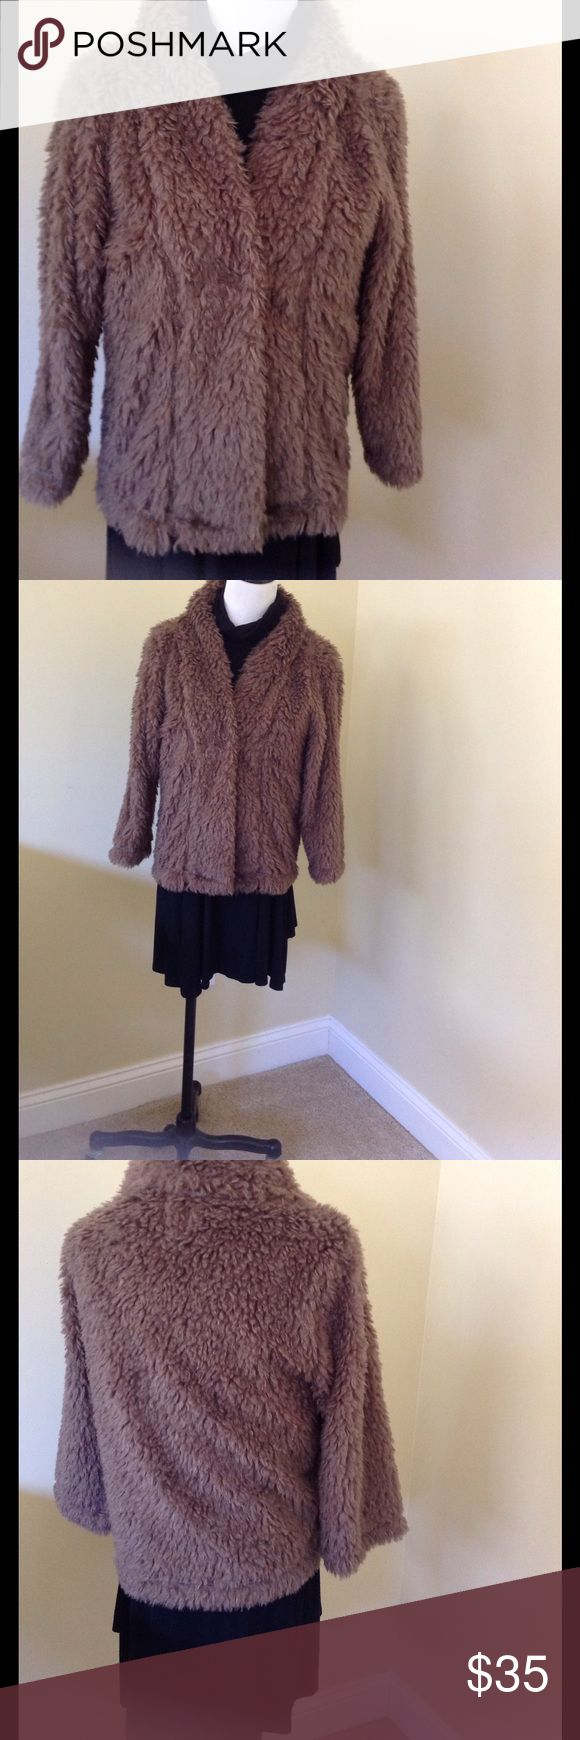 Dylan for True Grit Jacket Dylan for True Grit, shaggy jacket. Medium brown shaggy jacket with 3/4 sleeves and single snap closure. EUC, does have some of the shaggy fabric coming through inside liner. True Grit Jackets & Coats